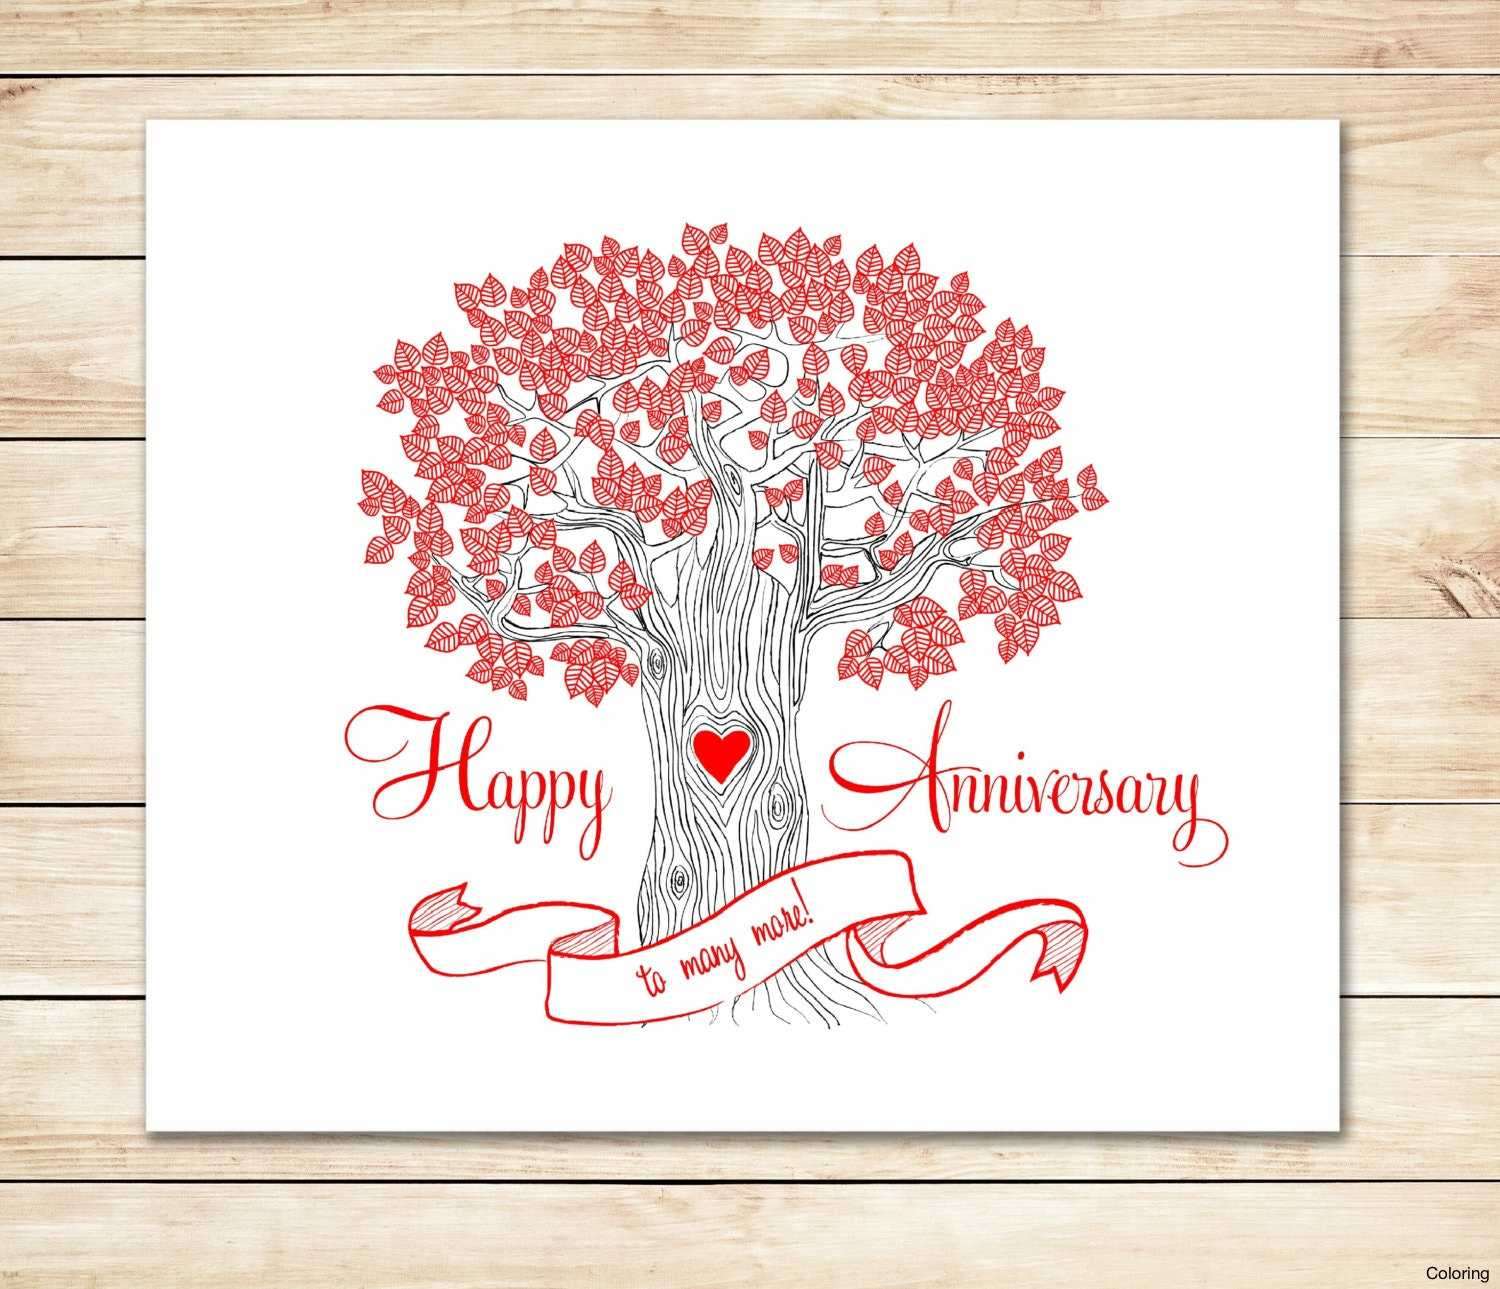 5+ Free Anniversary Card Template | Ml Datos Within Word Anniversary Card Template